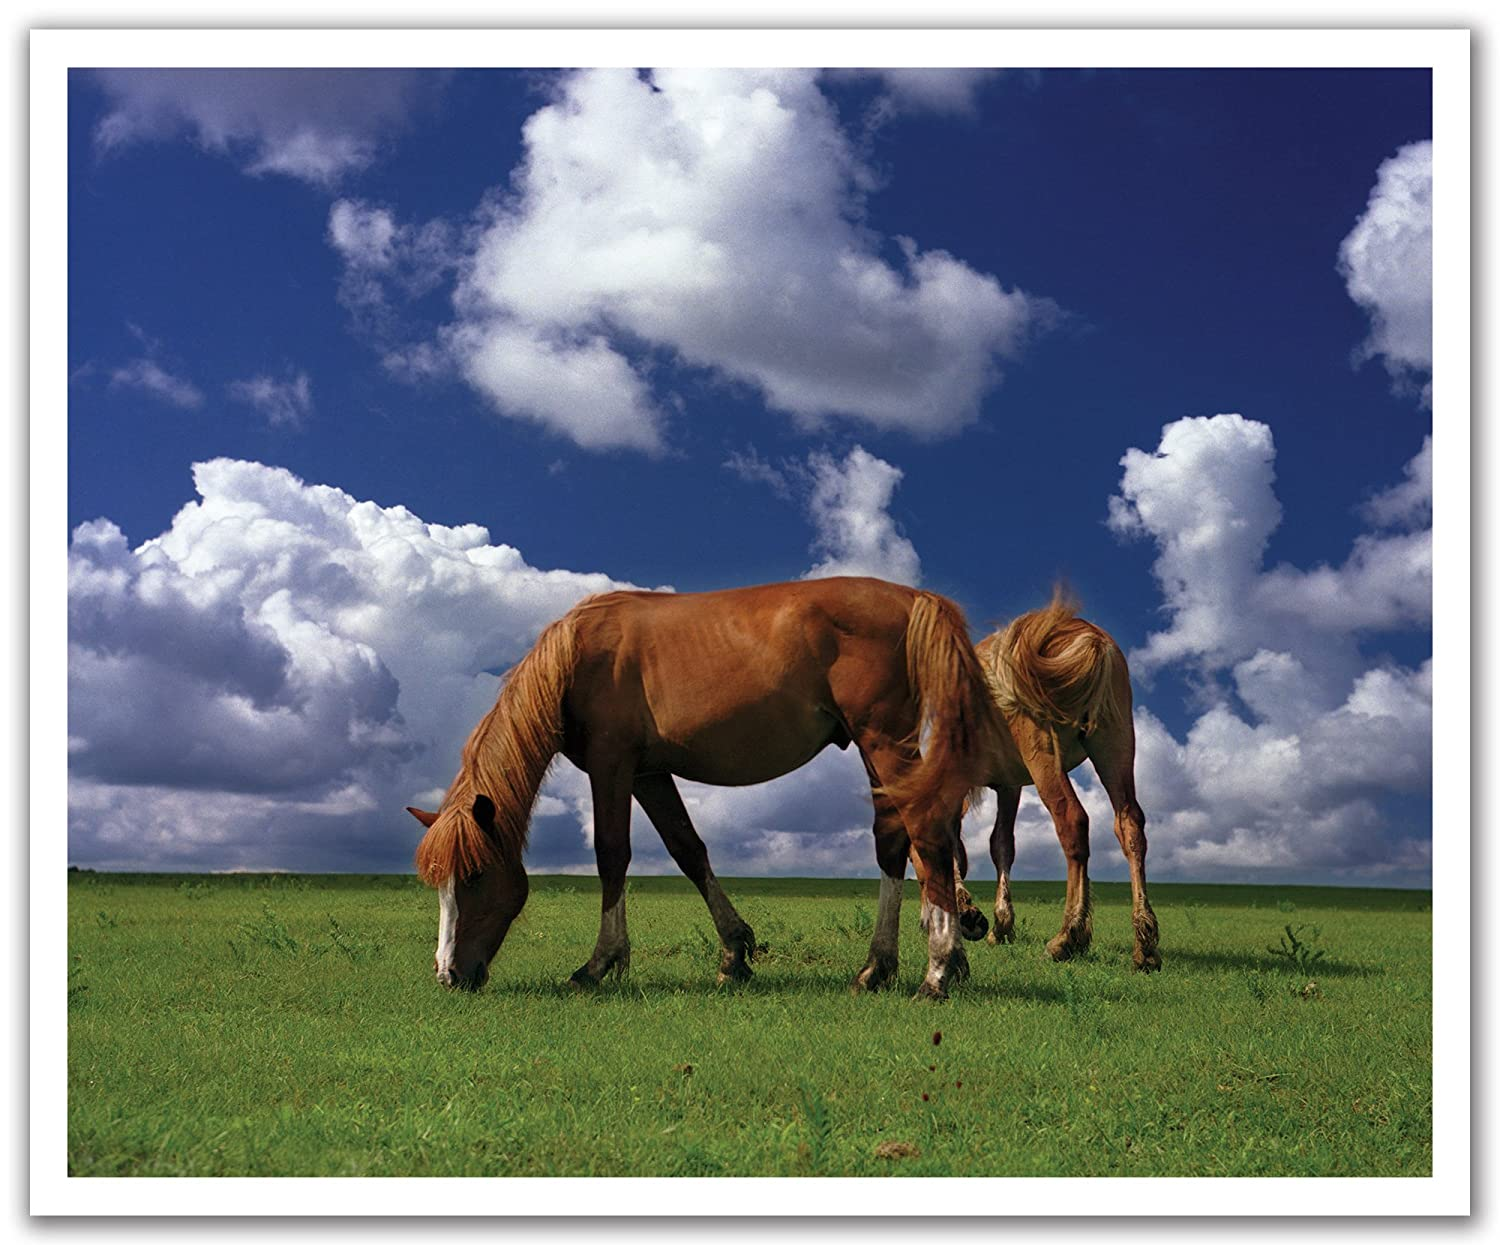 24 by 19.75-Inch JP London Peel and Stick Removable Wall Decal Sticker Mural Horses on Plain Grazing Farmland Wild